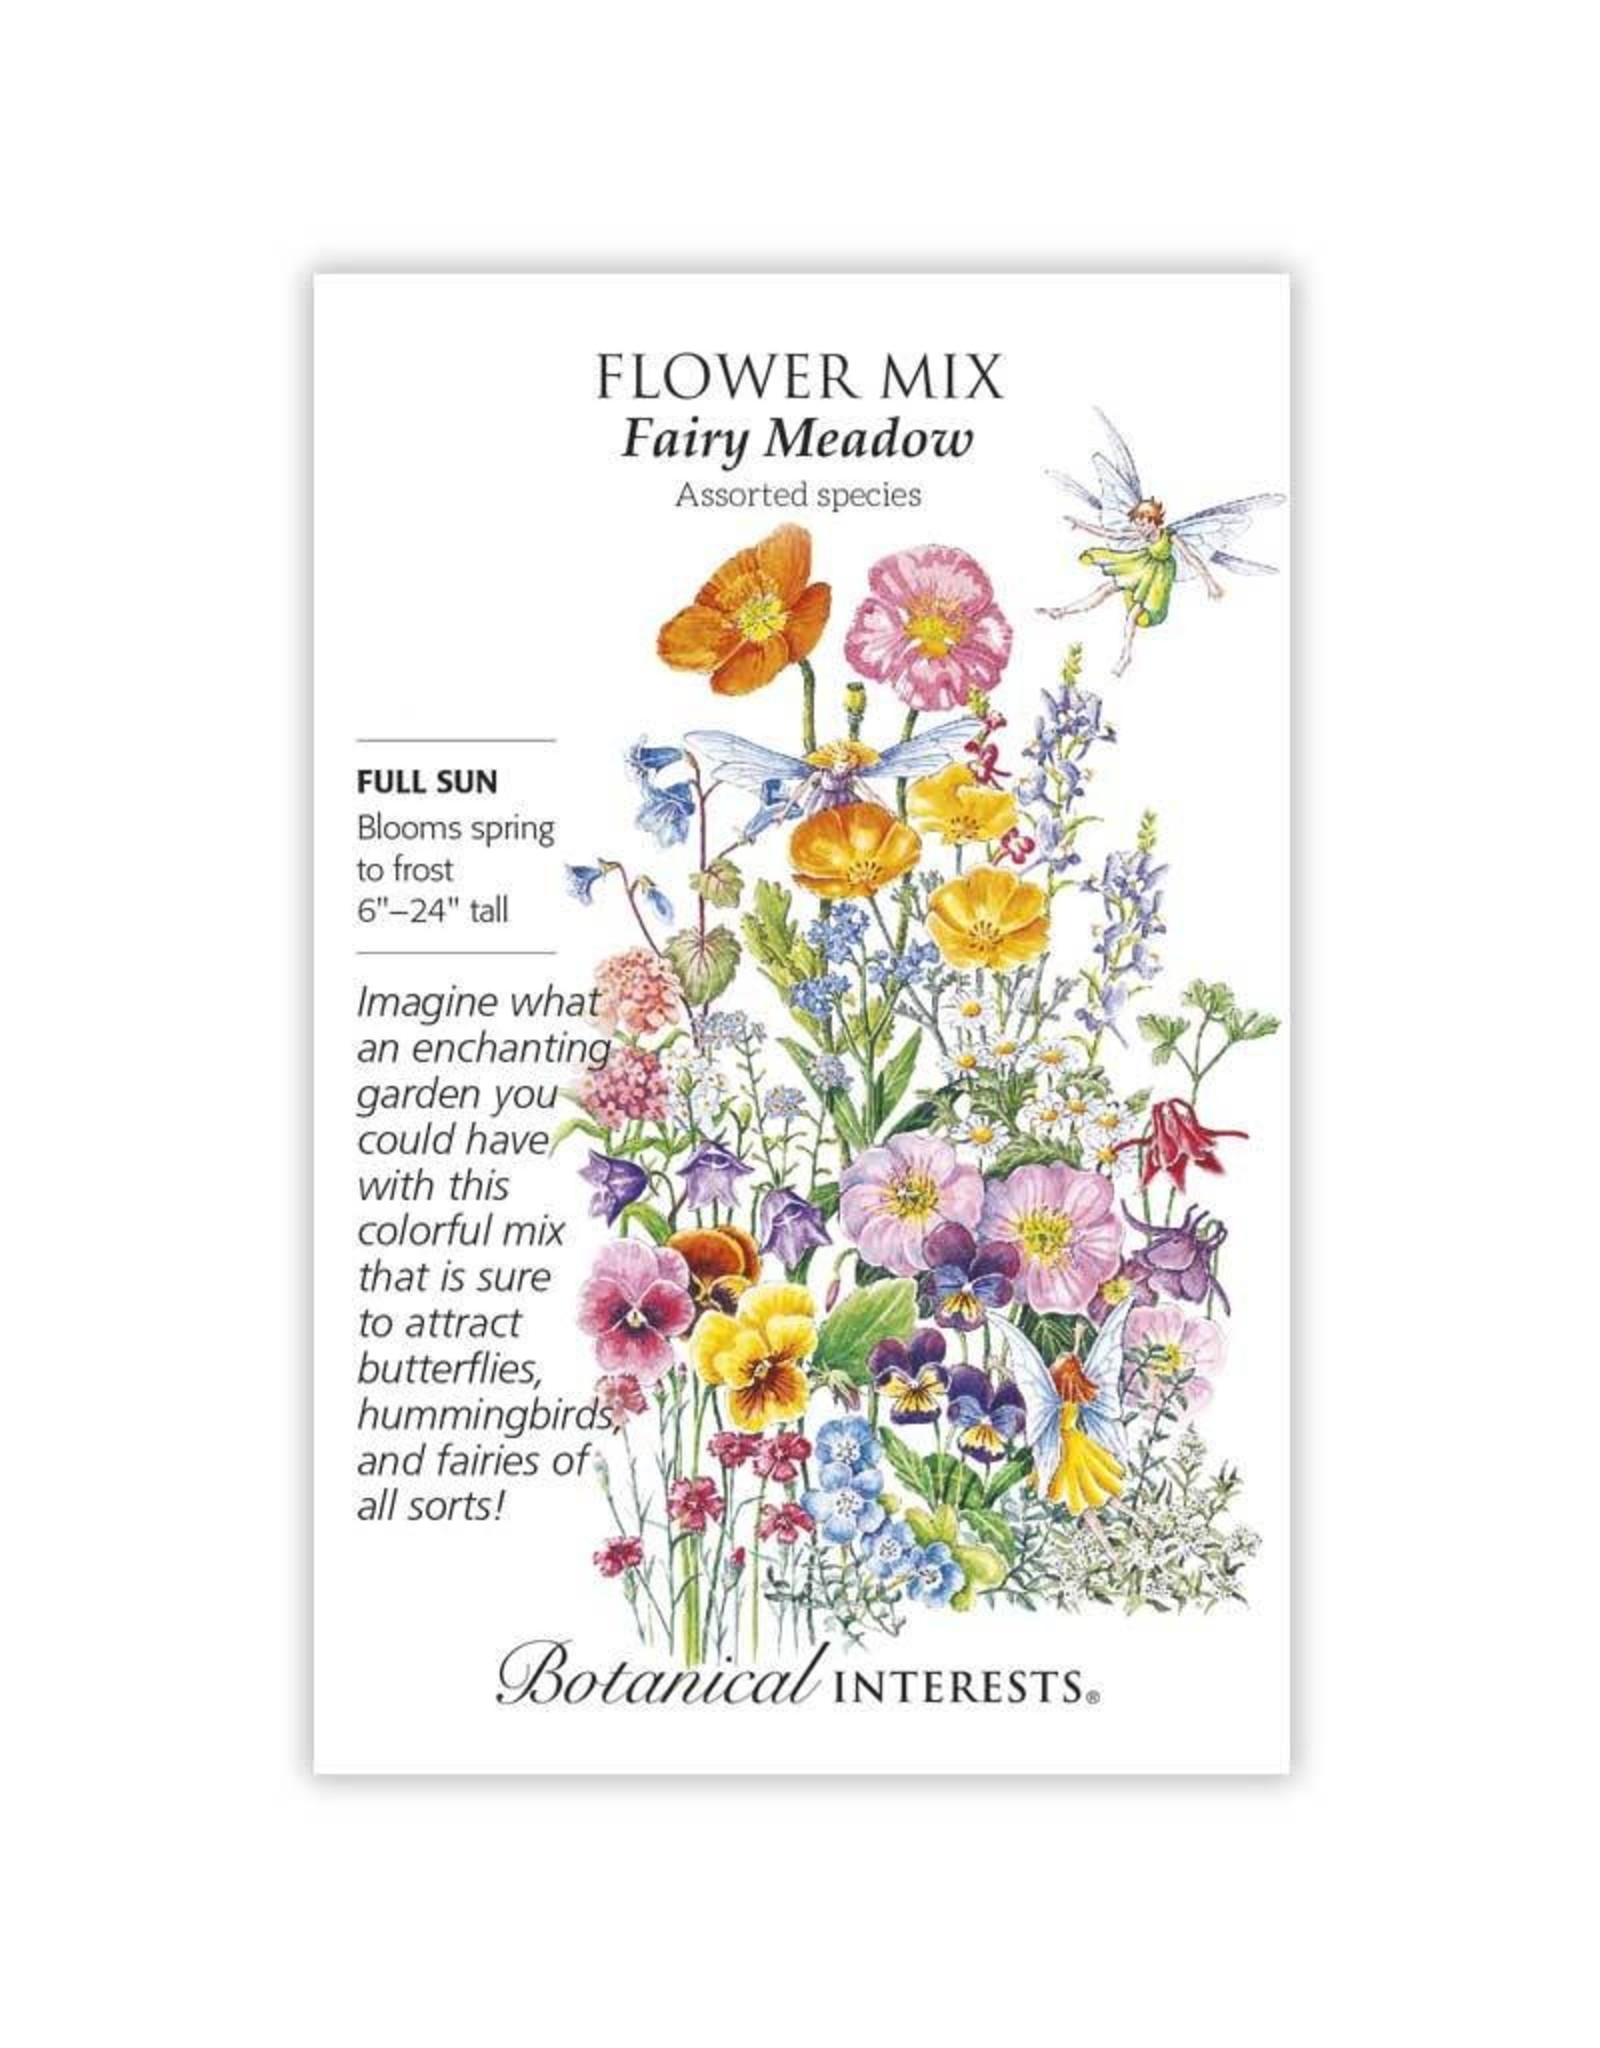 Seeds - Flower Mix Fairy Meadow